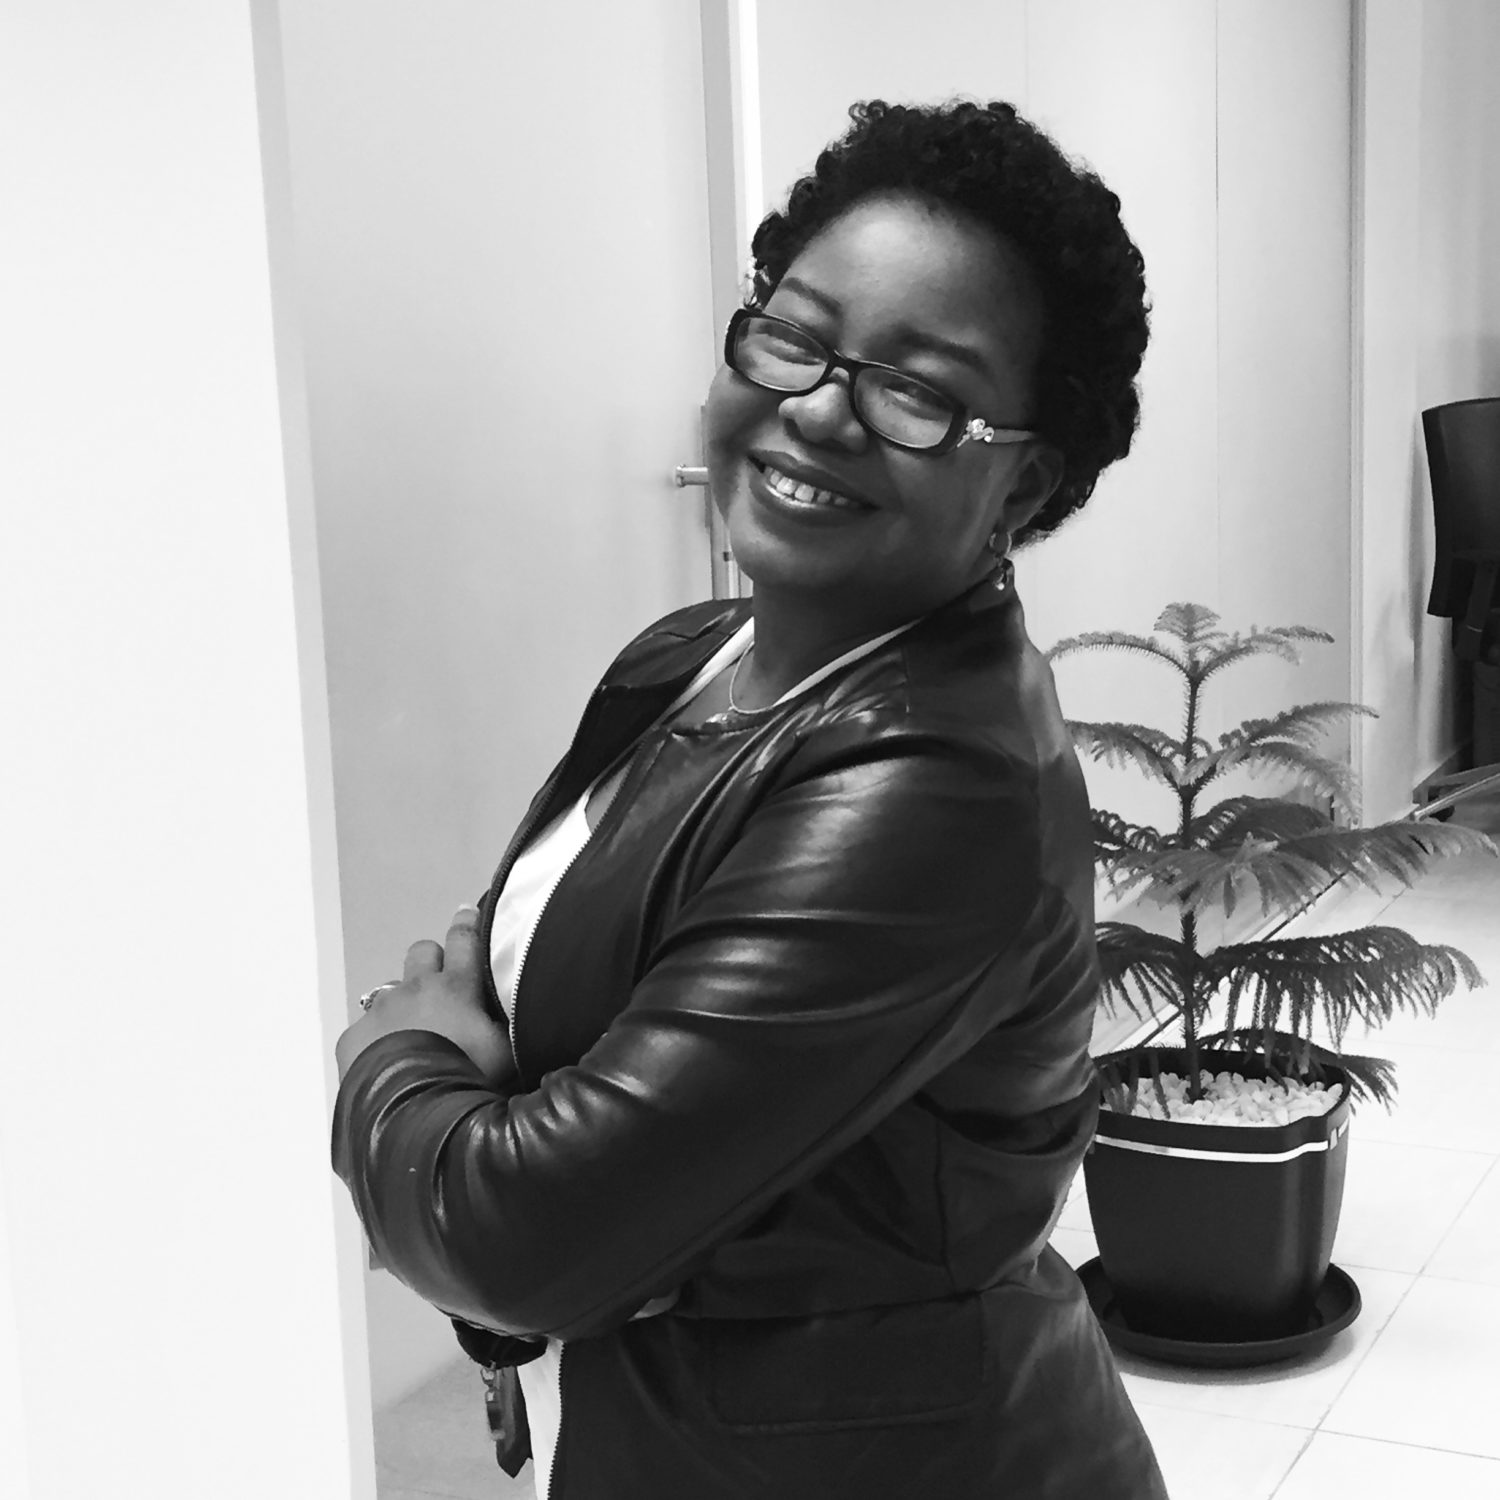 Kelechi is currently the Head, Human Resources, Administration and Communications at Transport Services Ltd (TSL), Nigeria. She was previously the Head of Novartis Africa Corporate University, responsible for Capability and Leadership Development for Novartis Africa, Sandoz Africa as well as Alcorn Africa; a role she took on in November 2015.